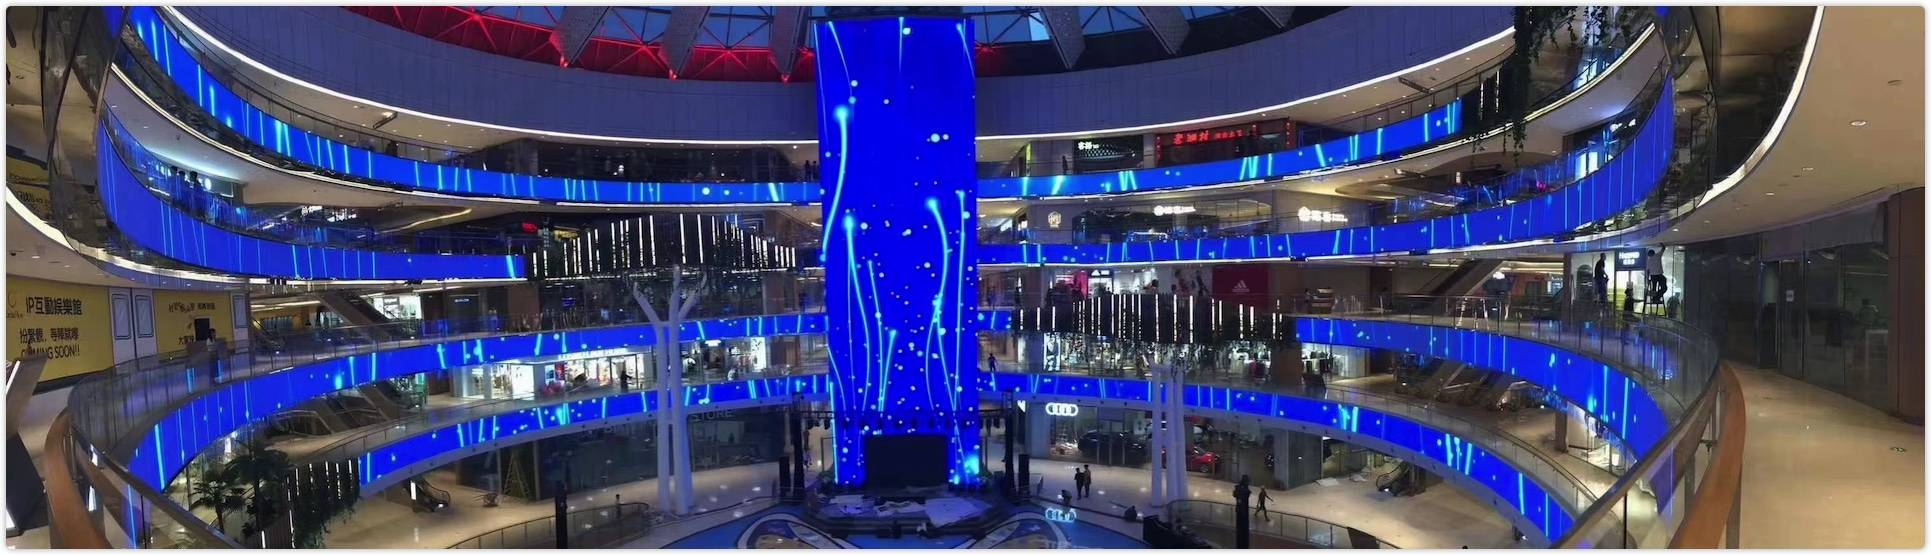 indoor fixed transparent led display yonwaytech